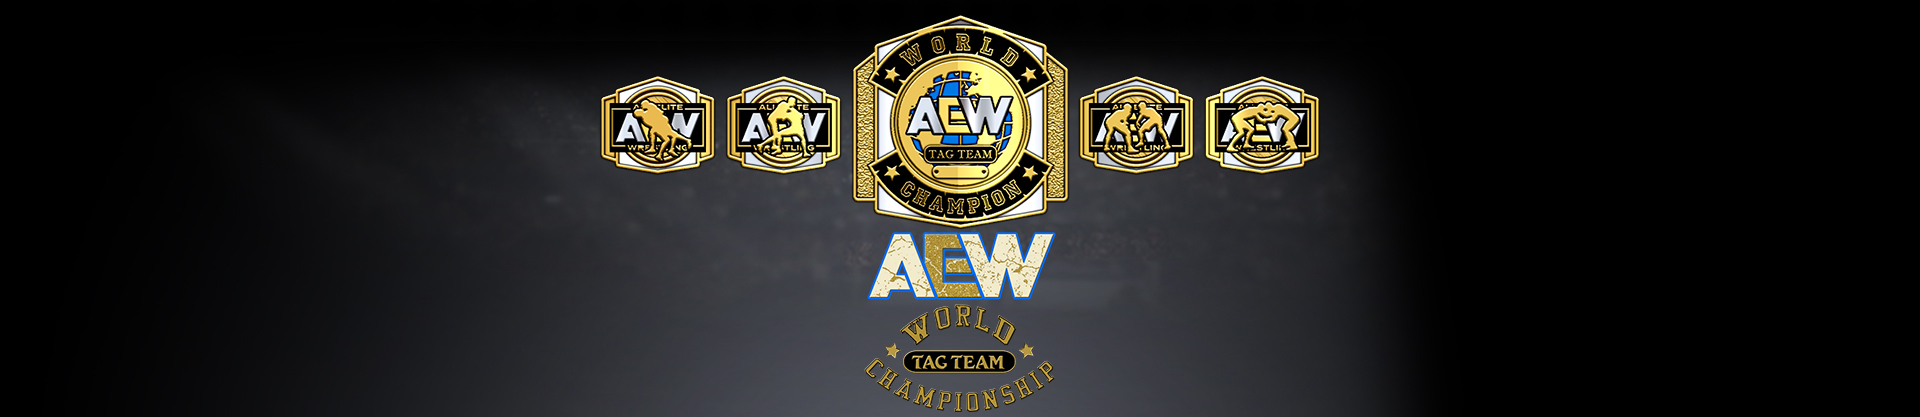 AEW World Tag Team Championship/Champion gallery